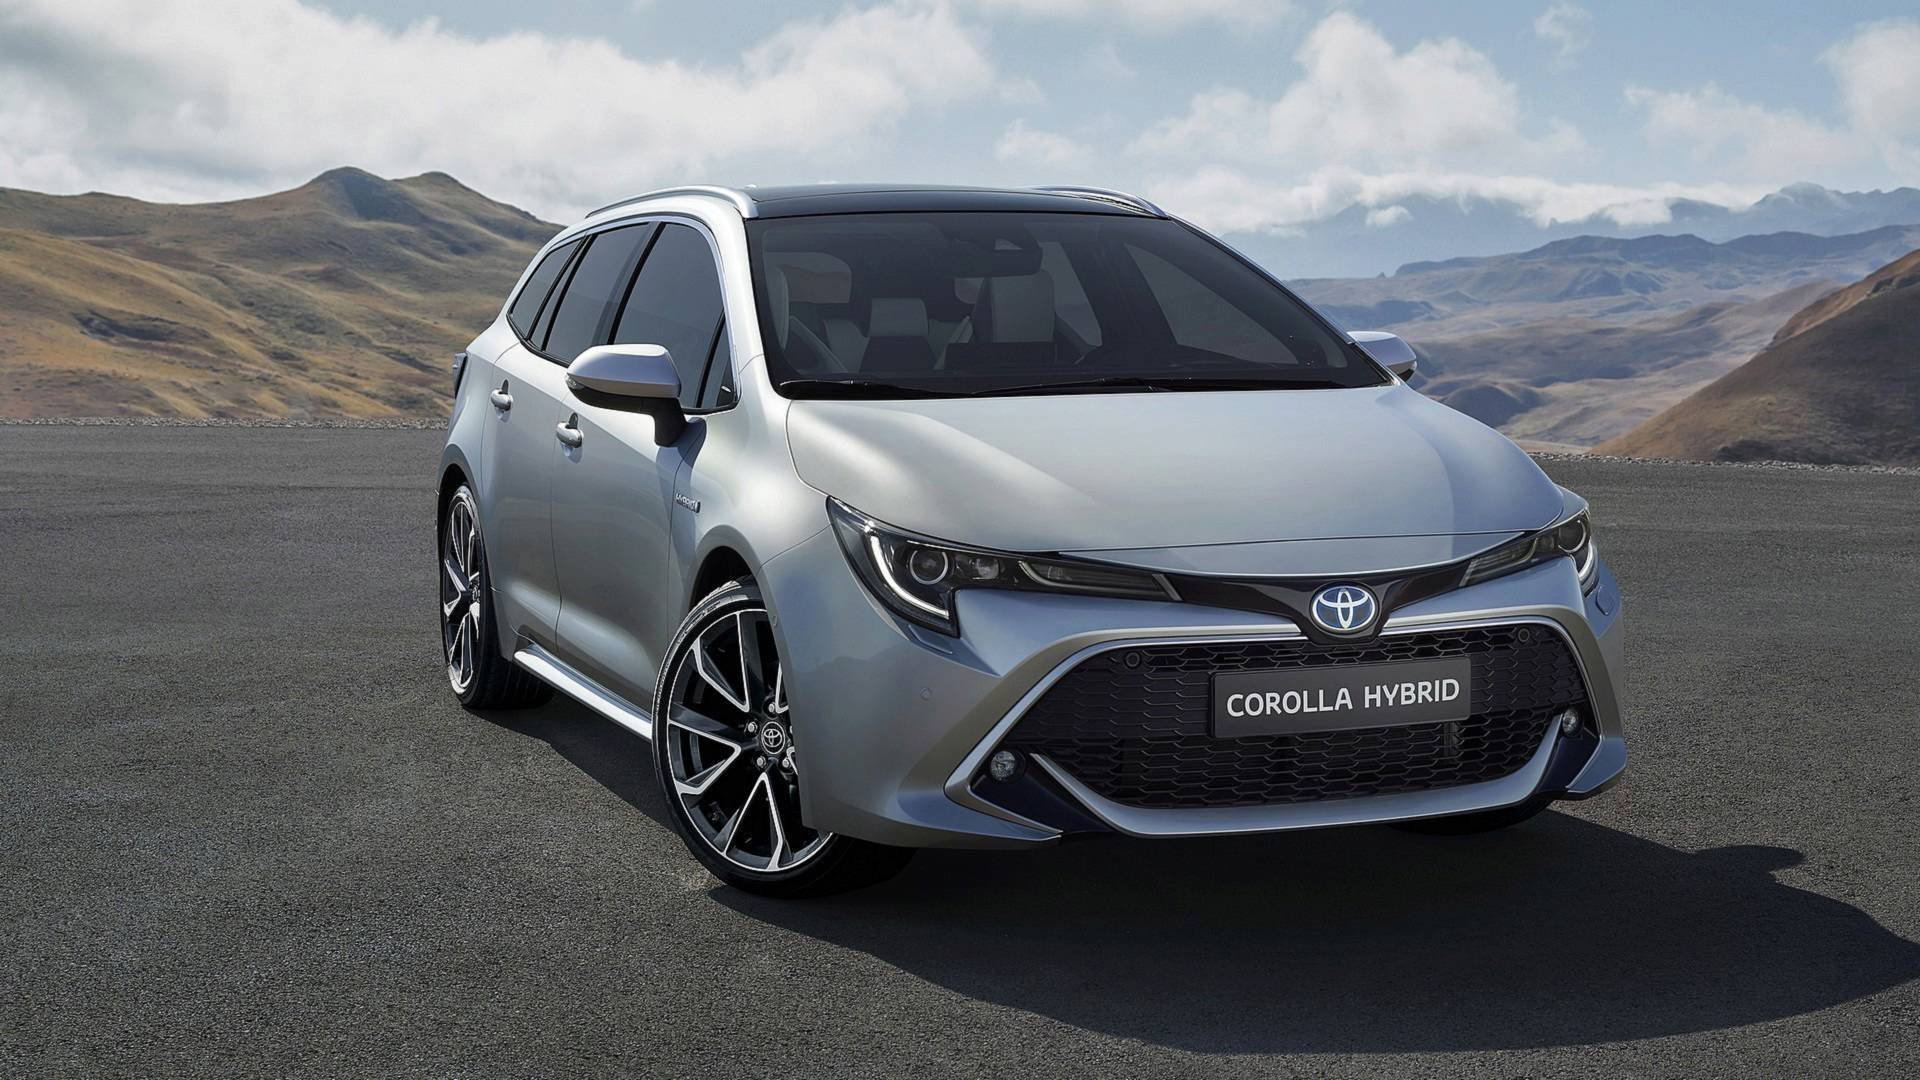 2019 Toyota Corolla Touring Sports Unveiled With Massive Trunk